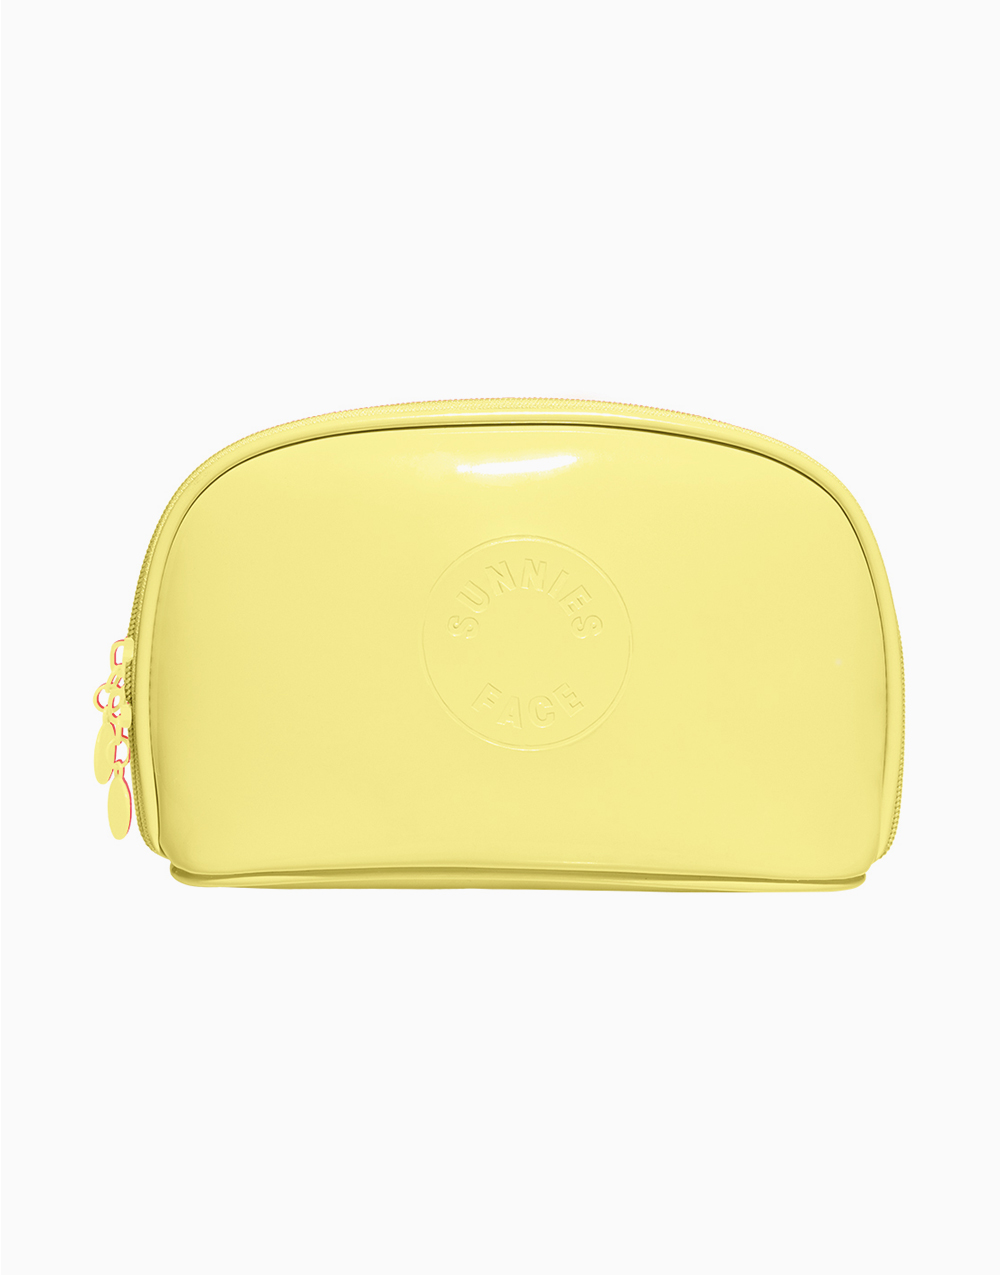 Sunnies Face Patent Pouch [Makeup Pouch] (Butter) by Sunnies Face